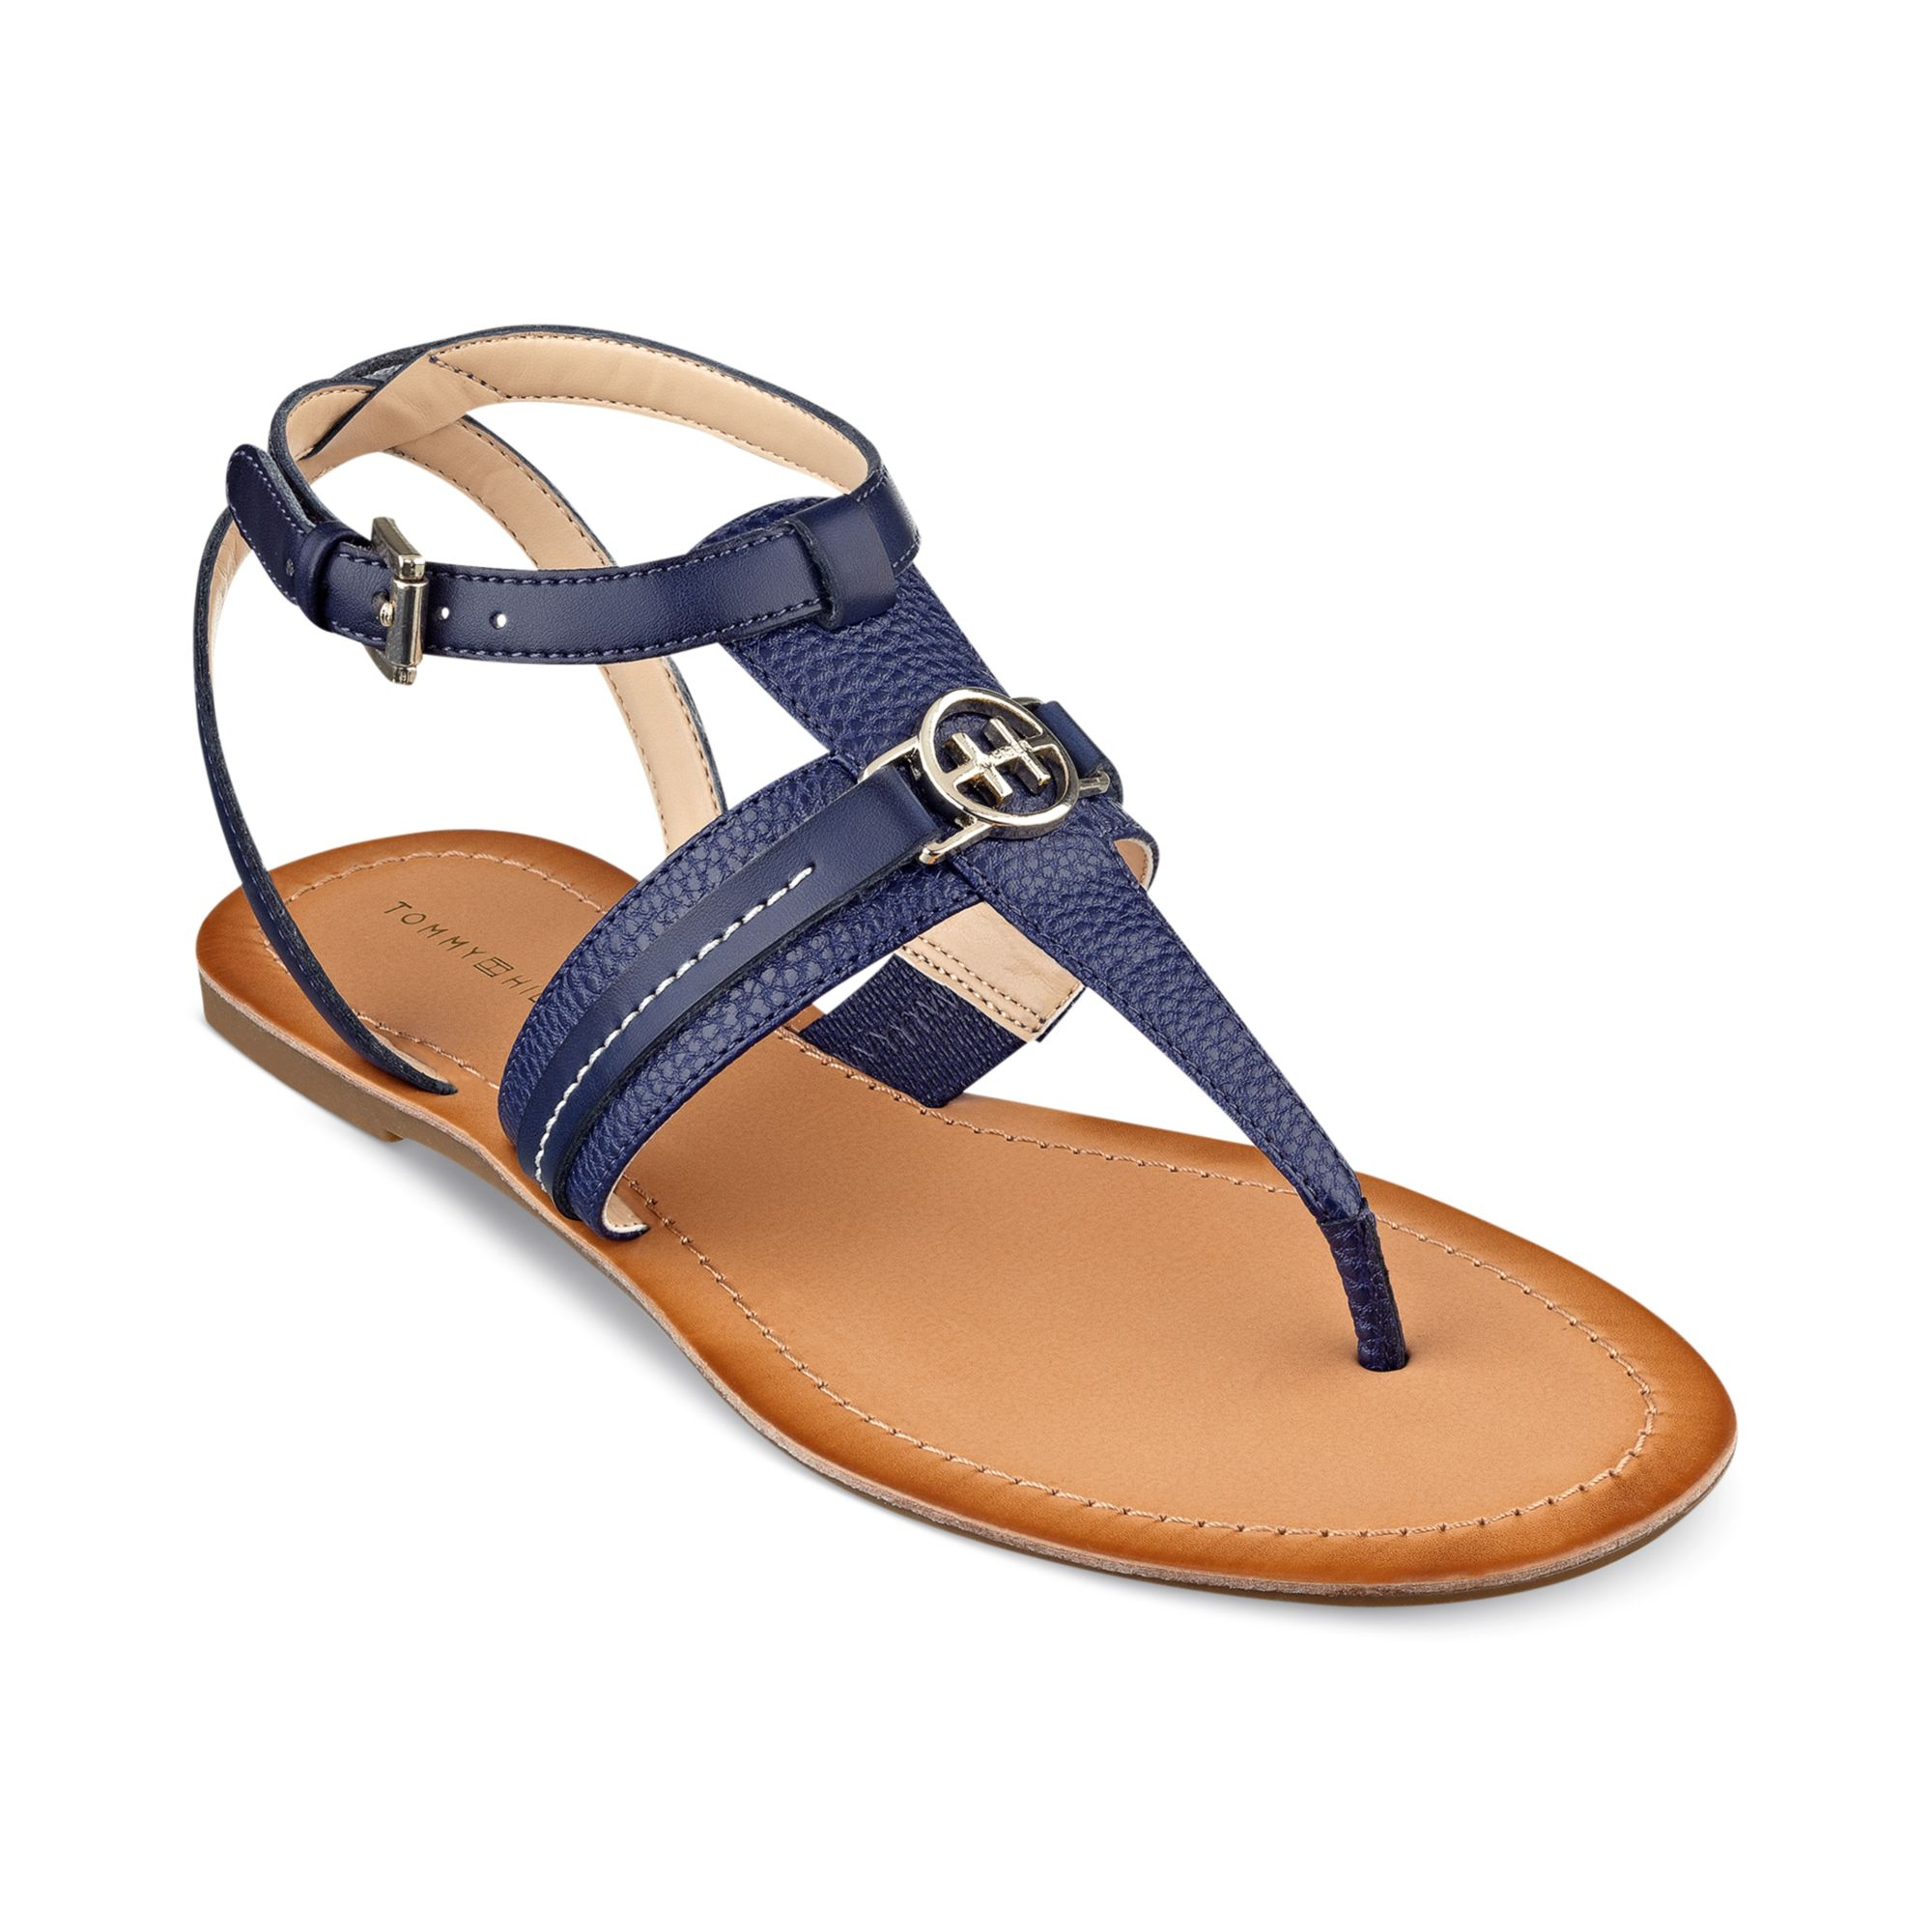 b6cbb8fe7 Lyst - Tommy Hilfiger Womens Lorine Flat Thong Sandals in Blue